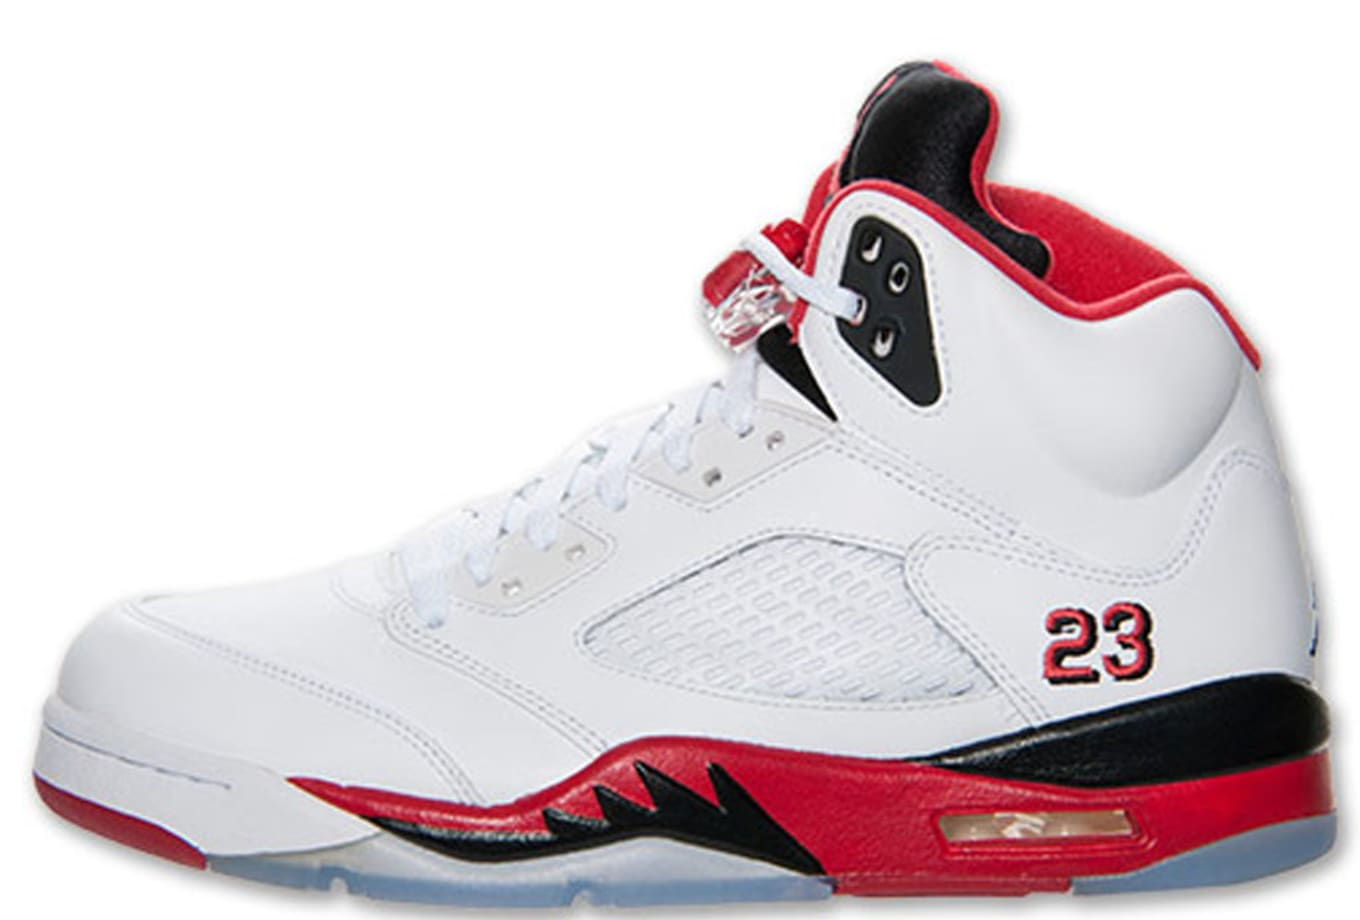 best website 0094c 49a6d Air Jordan 5 Retro  Fire Red . Air Jordan 5 (V). Style Code  136027-120